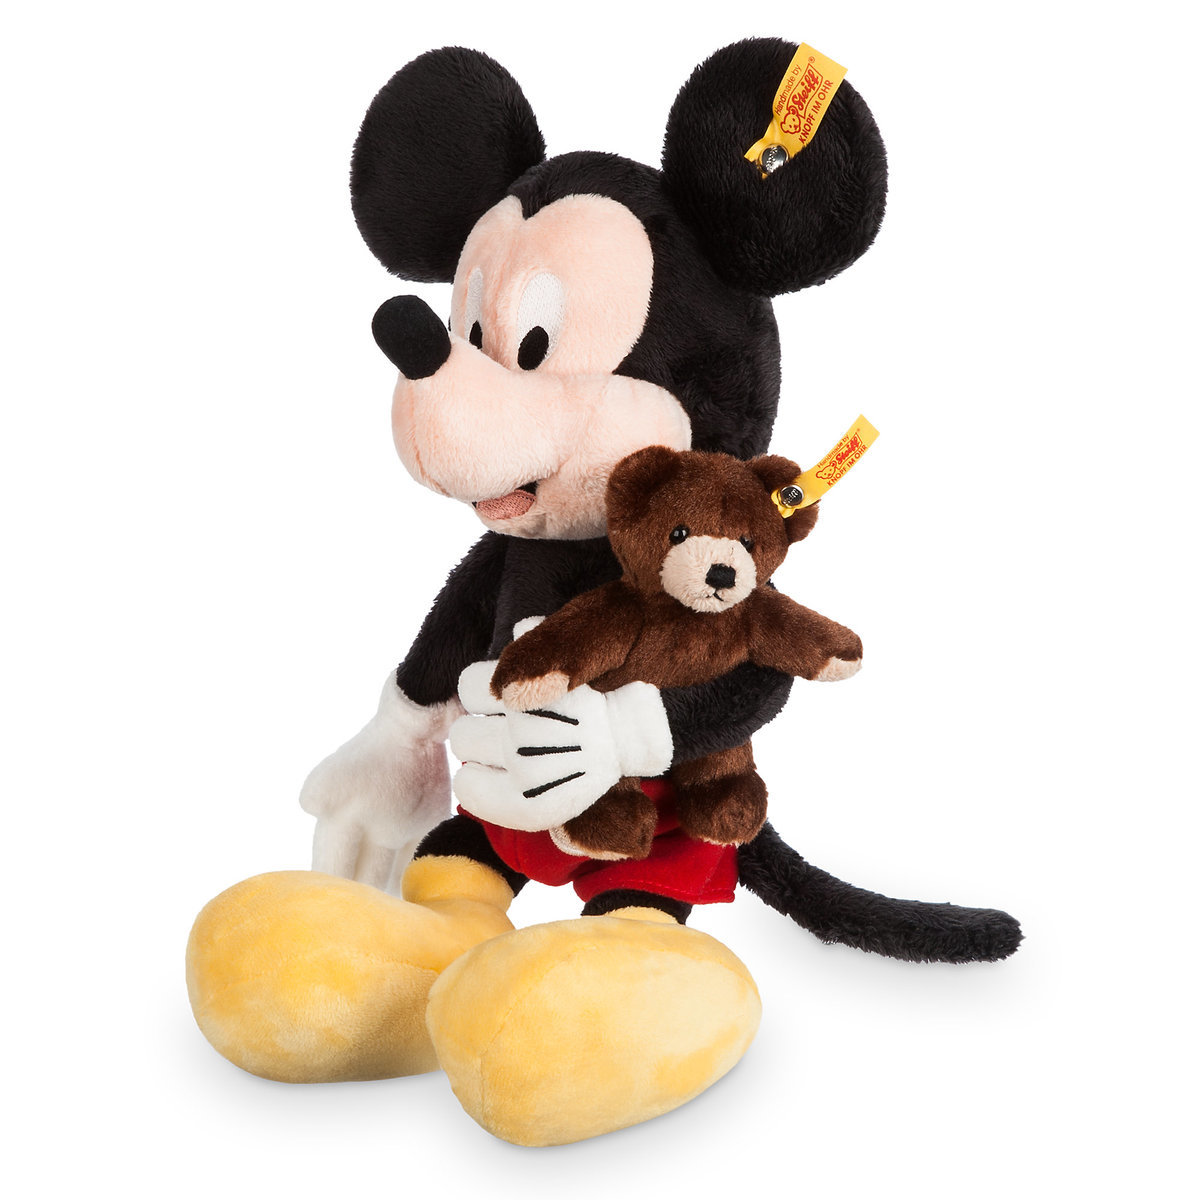 Your Wdw Store Disney Plush Mickey Mouse Plush By